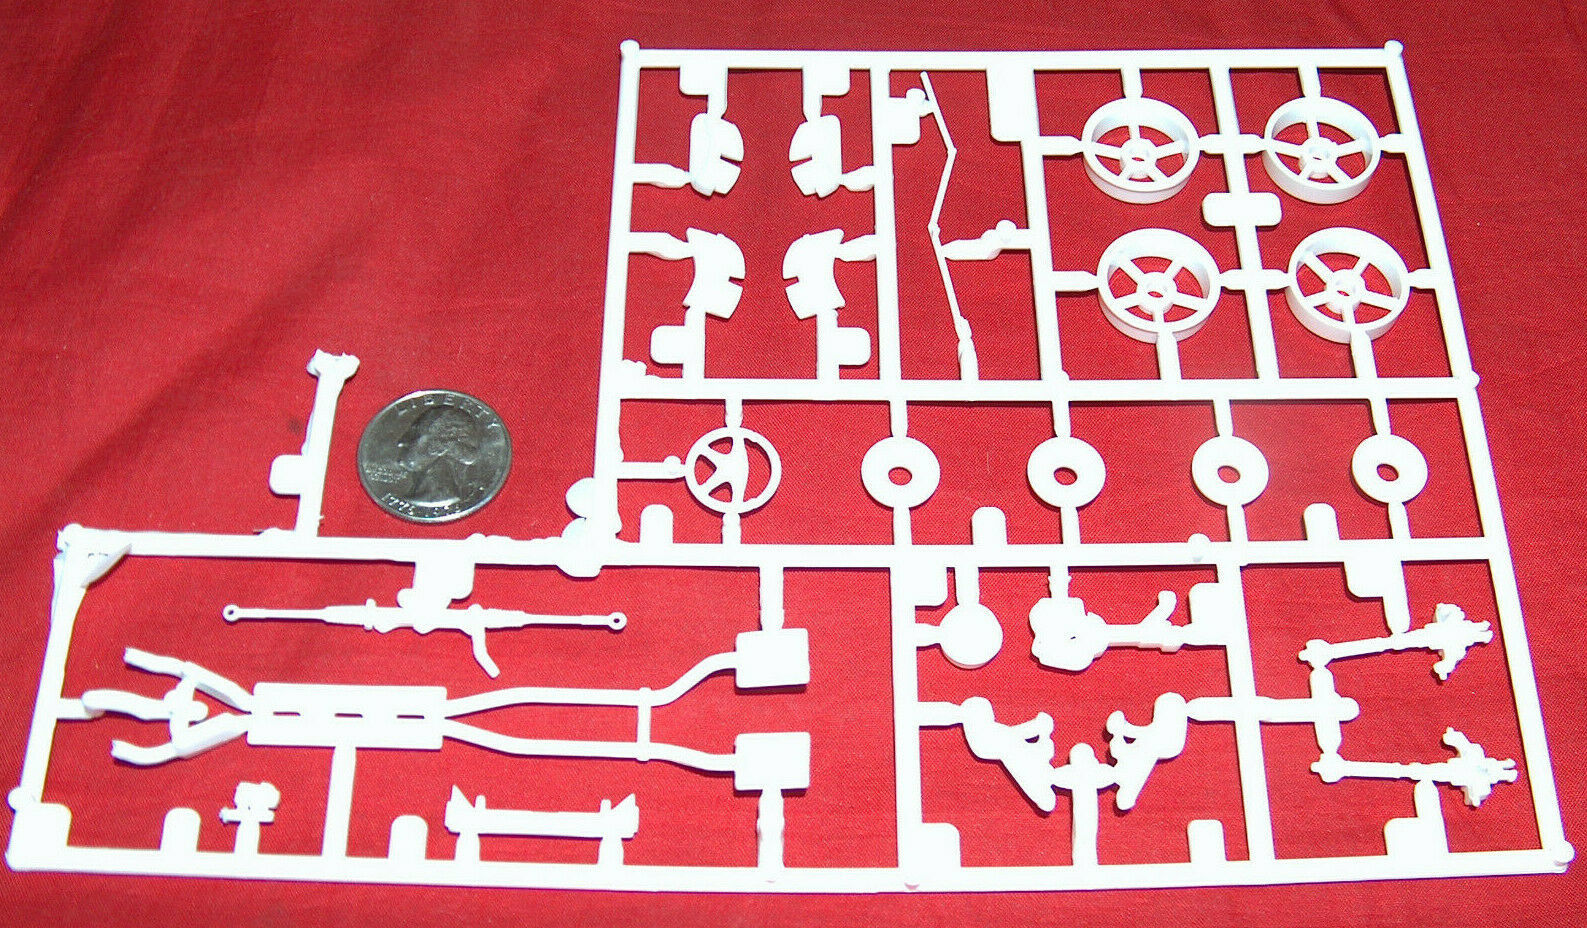 2004 Revell 1/25 Kit 2534 Shelby Series 1 Skill 2 OEM Replacement White Car - $12.08